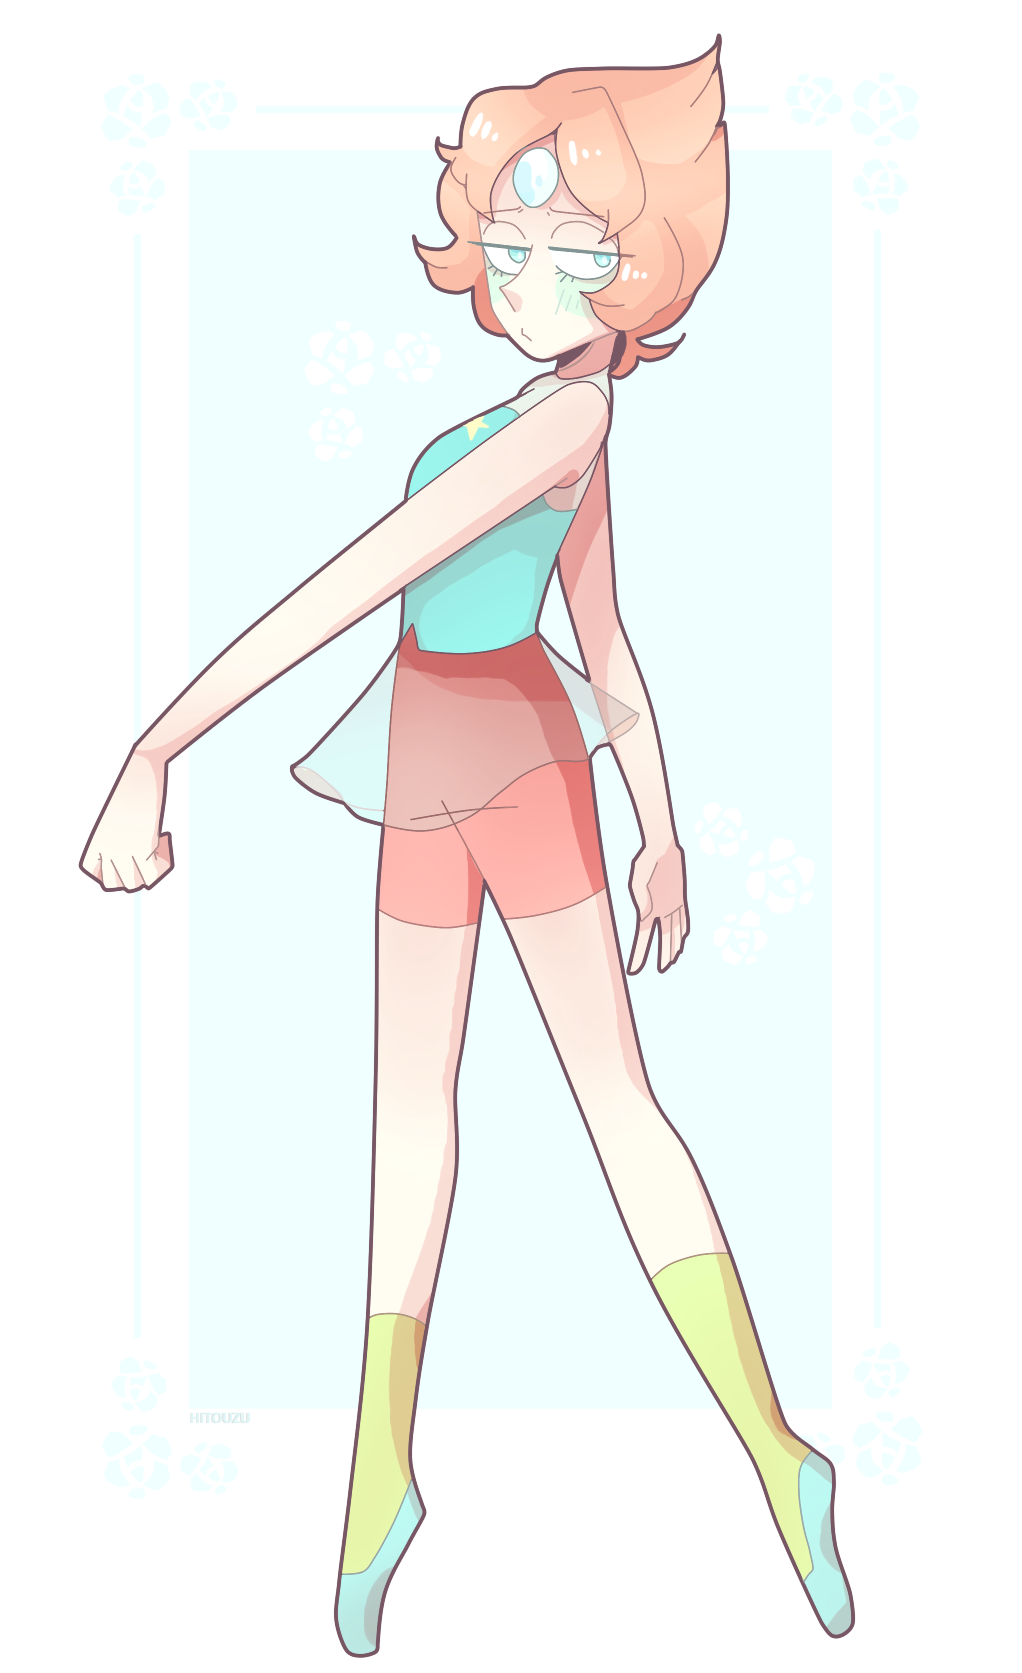 i recently caught up with steven universe ( i didnt watch it since 2016 i think? ) and i forgot how much i loved pearl!